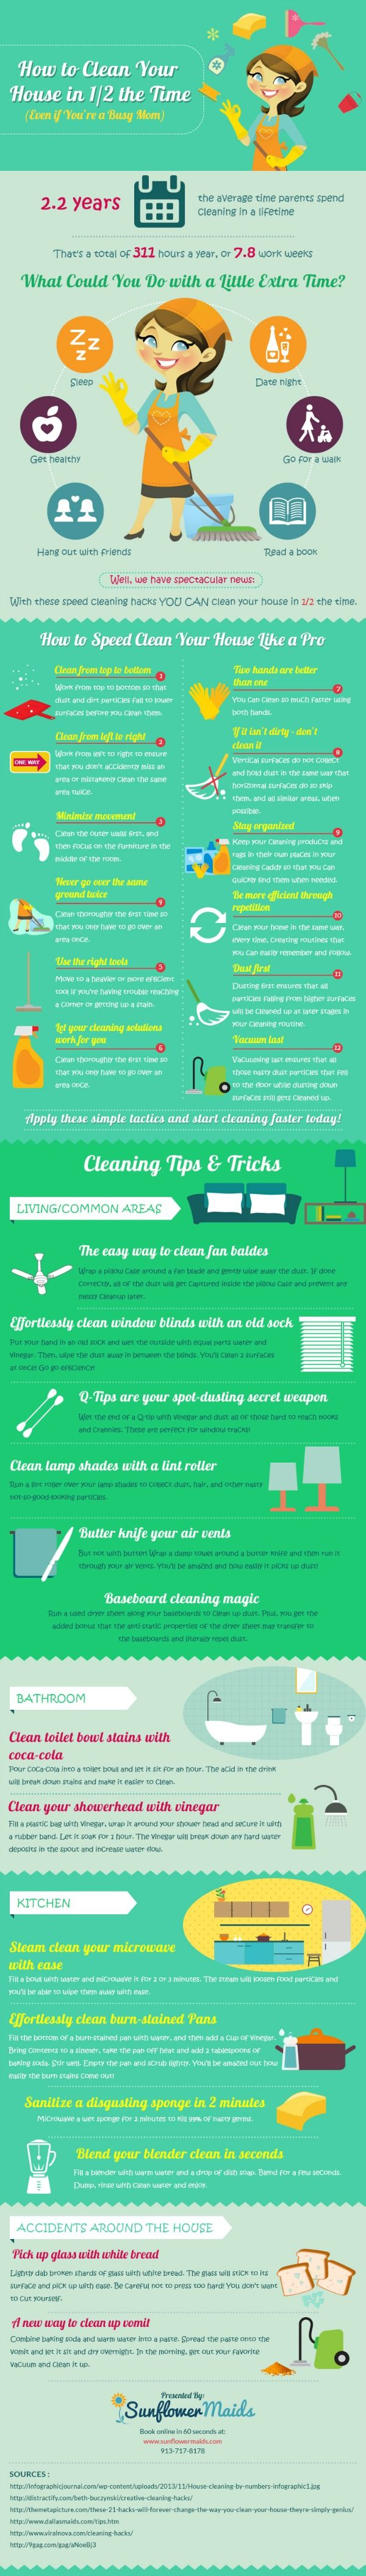 How to Clean Your House in 1/2 the Time (Even If You're a Busy Mom)   Kansas City Moms Blog